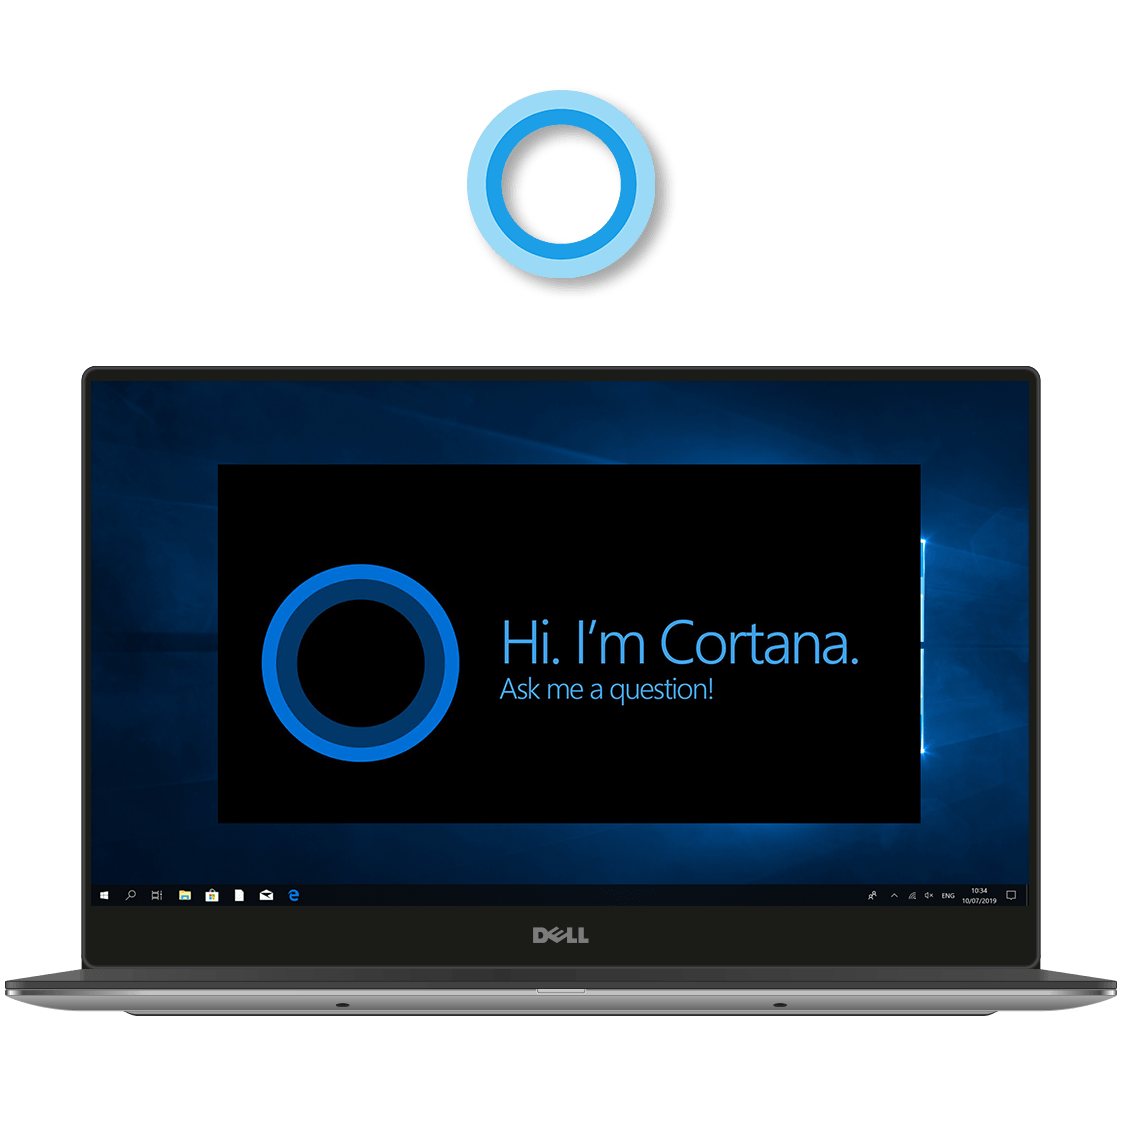 Cortana Windows 10 Home LicenceDeals.com